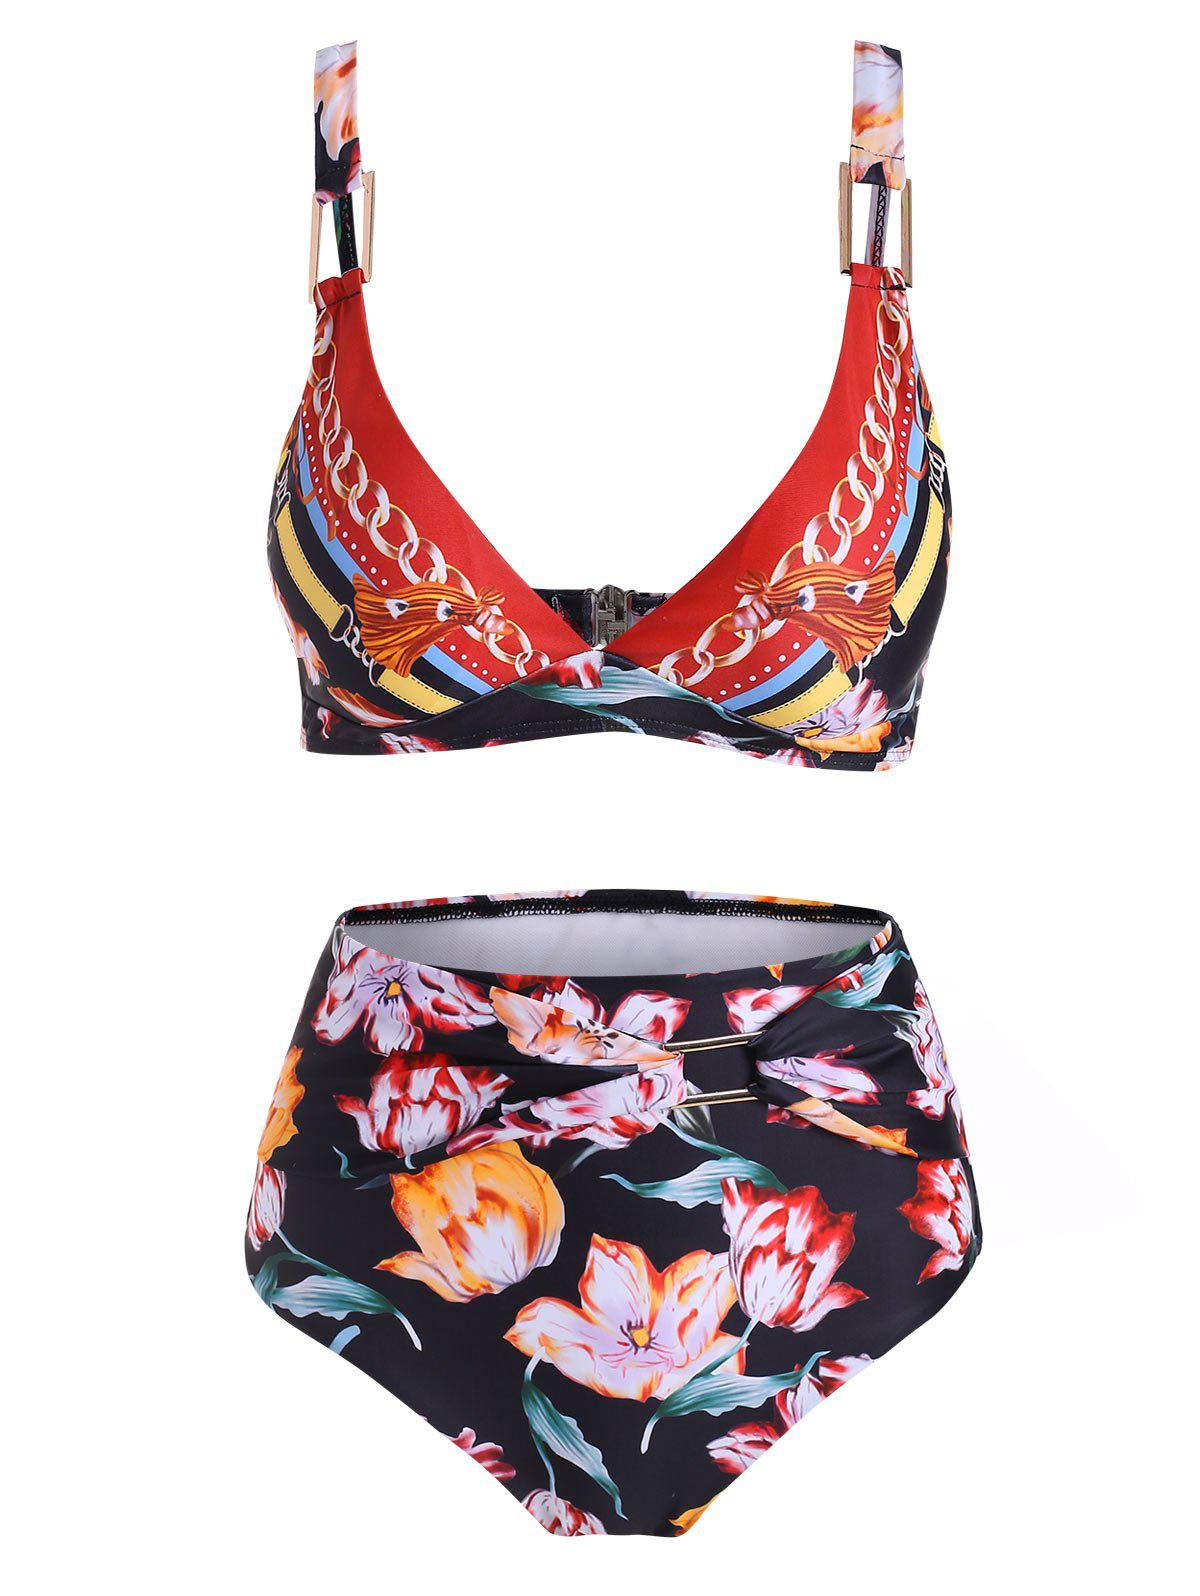 Metal Ring Floral High Waisted Bikini Swimsuit - multicolor XL